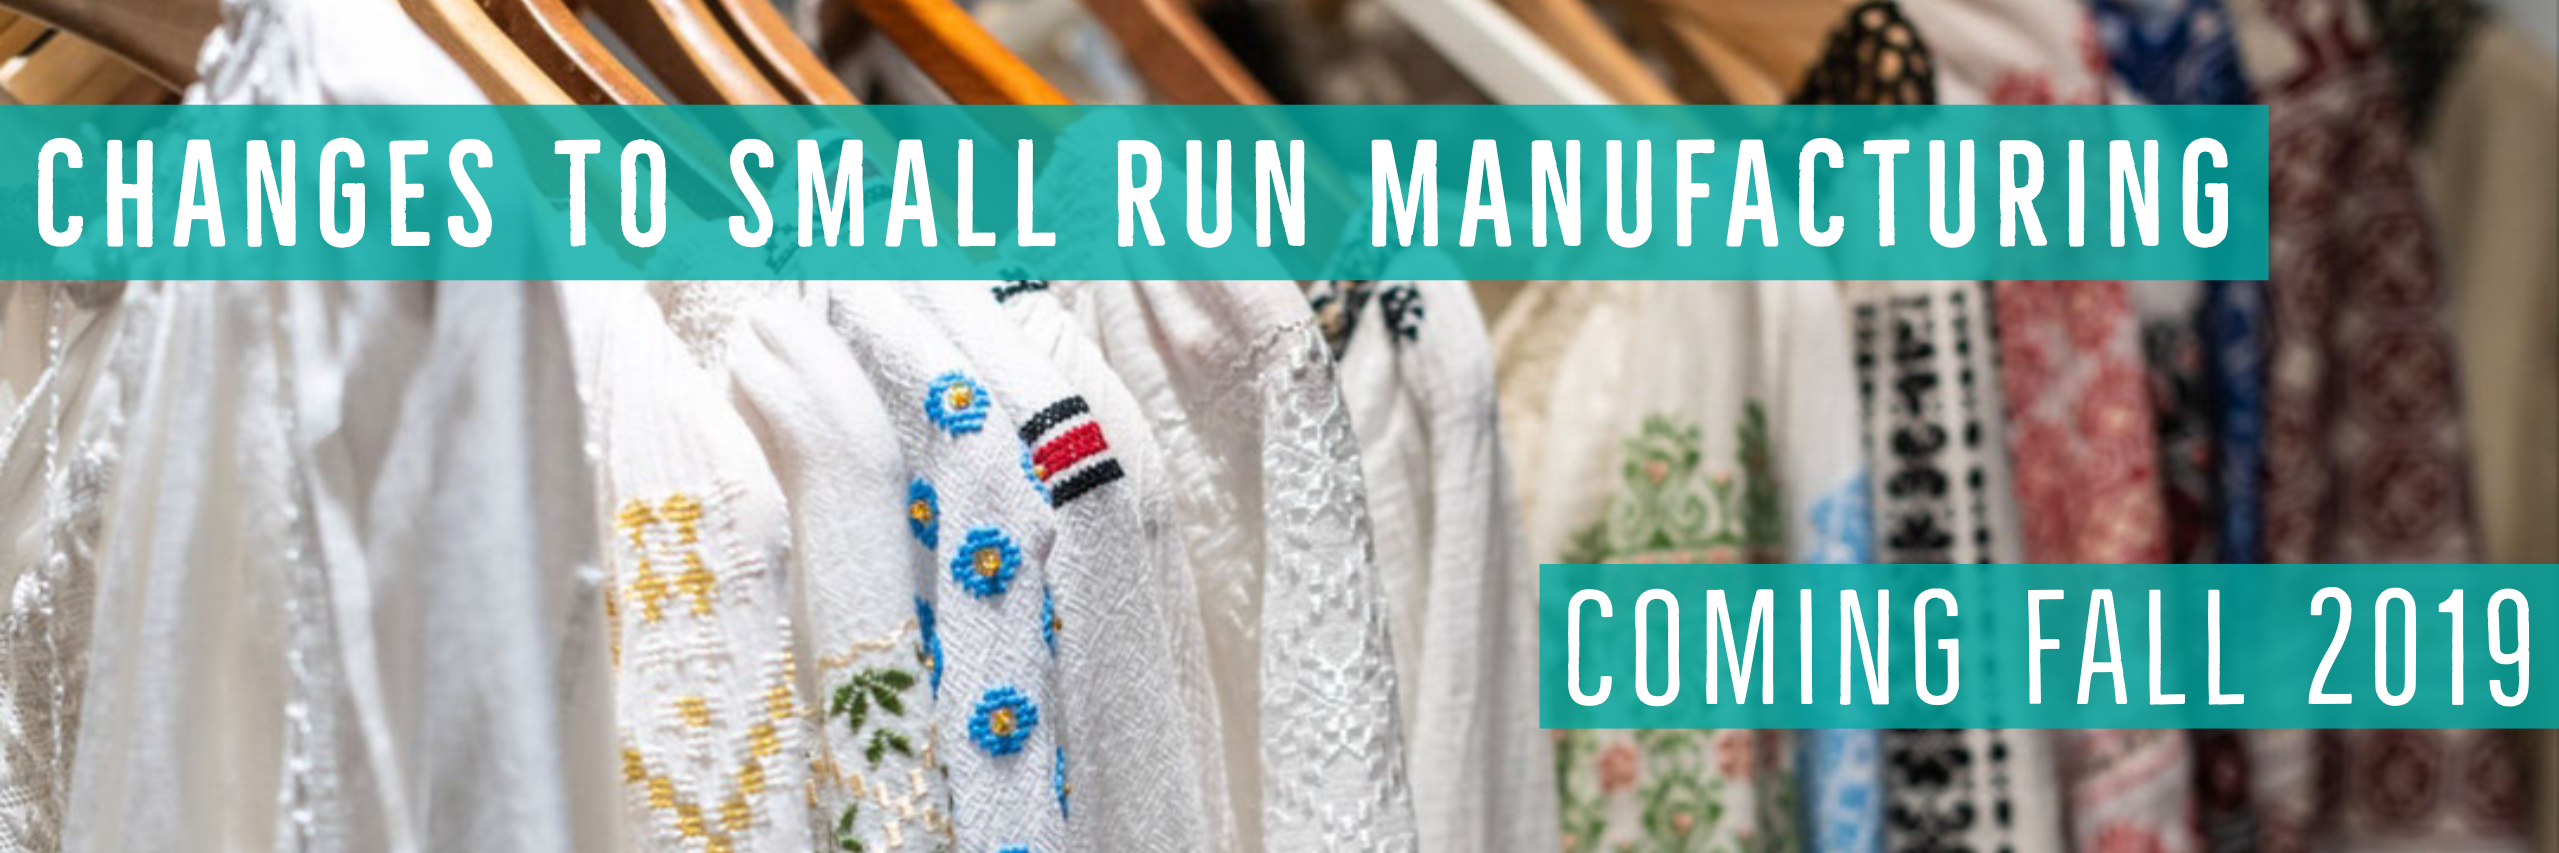 Changes to Small Run Manufacturing services - Fall 2019 - Stacey Sansom Designs